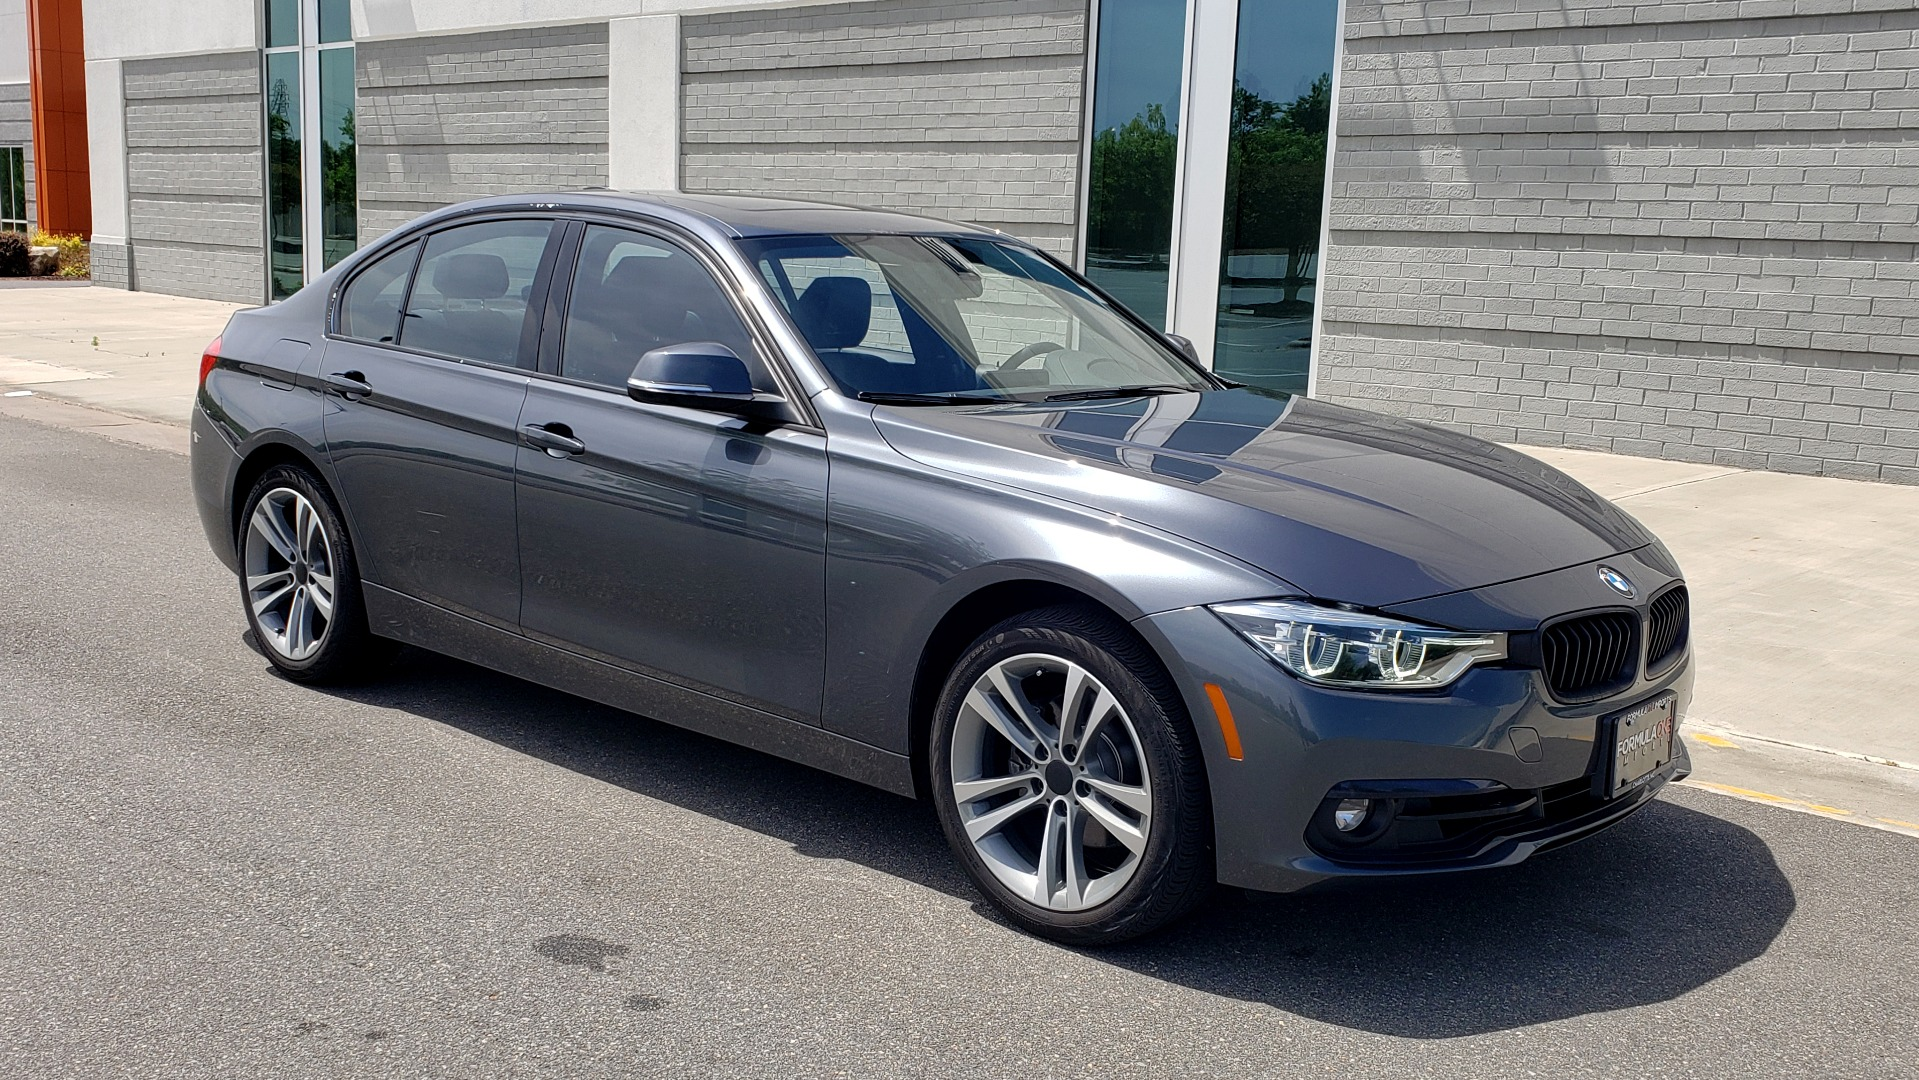 Used 2018 BMW 3 SERIES 330I XDRIVE / CONV PKG / SUNROOF / SPORT STS / HTD STS / REARVIEW for sale $28,495 at Formula Imports in Charlotte NC 28227 5